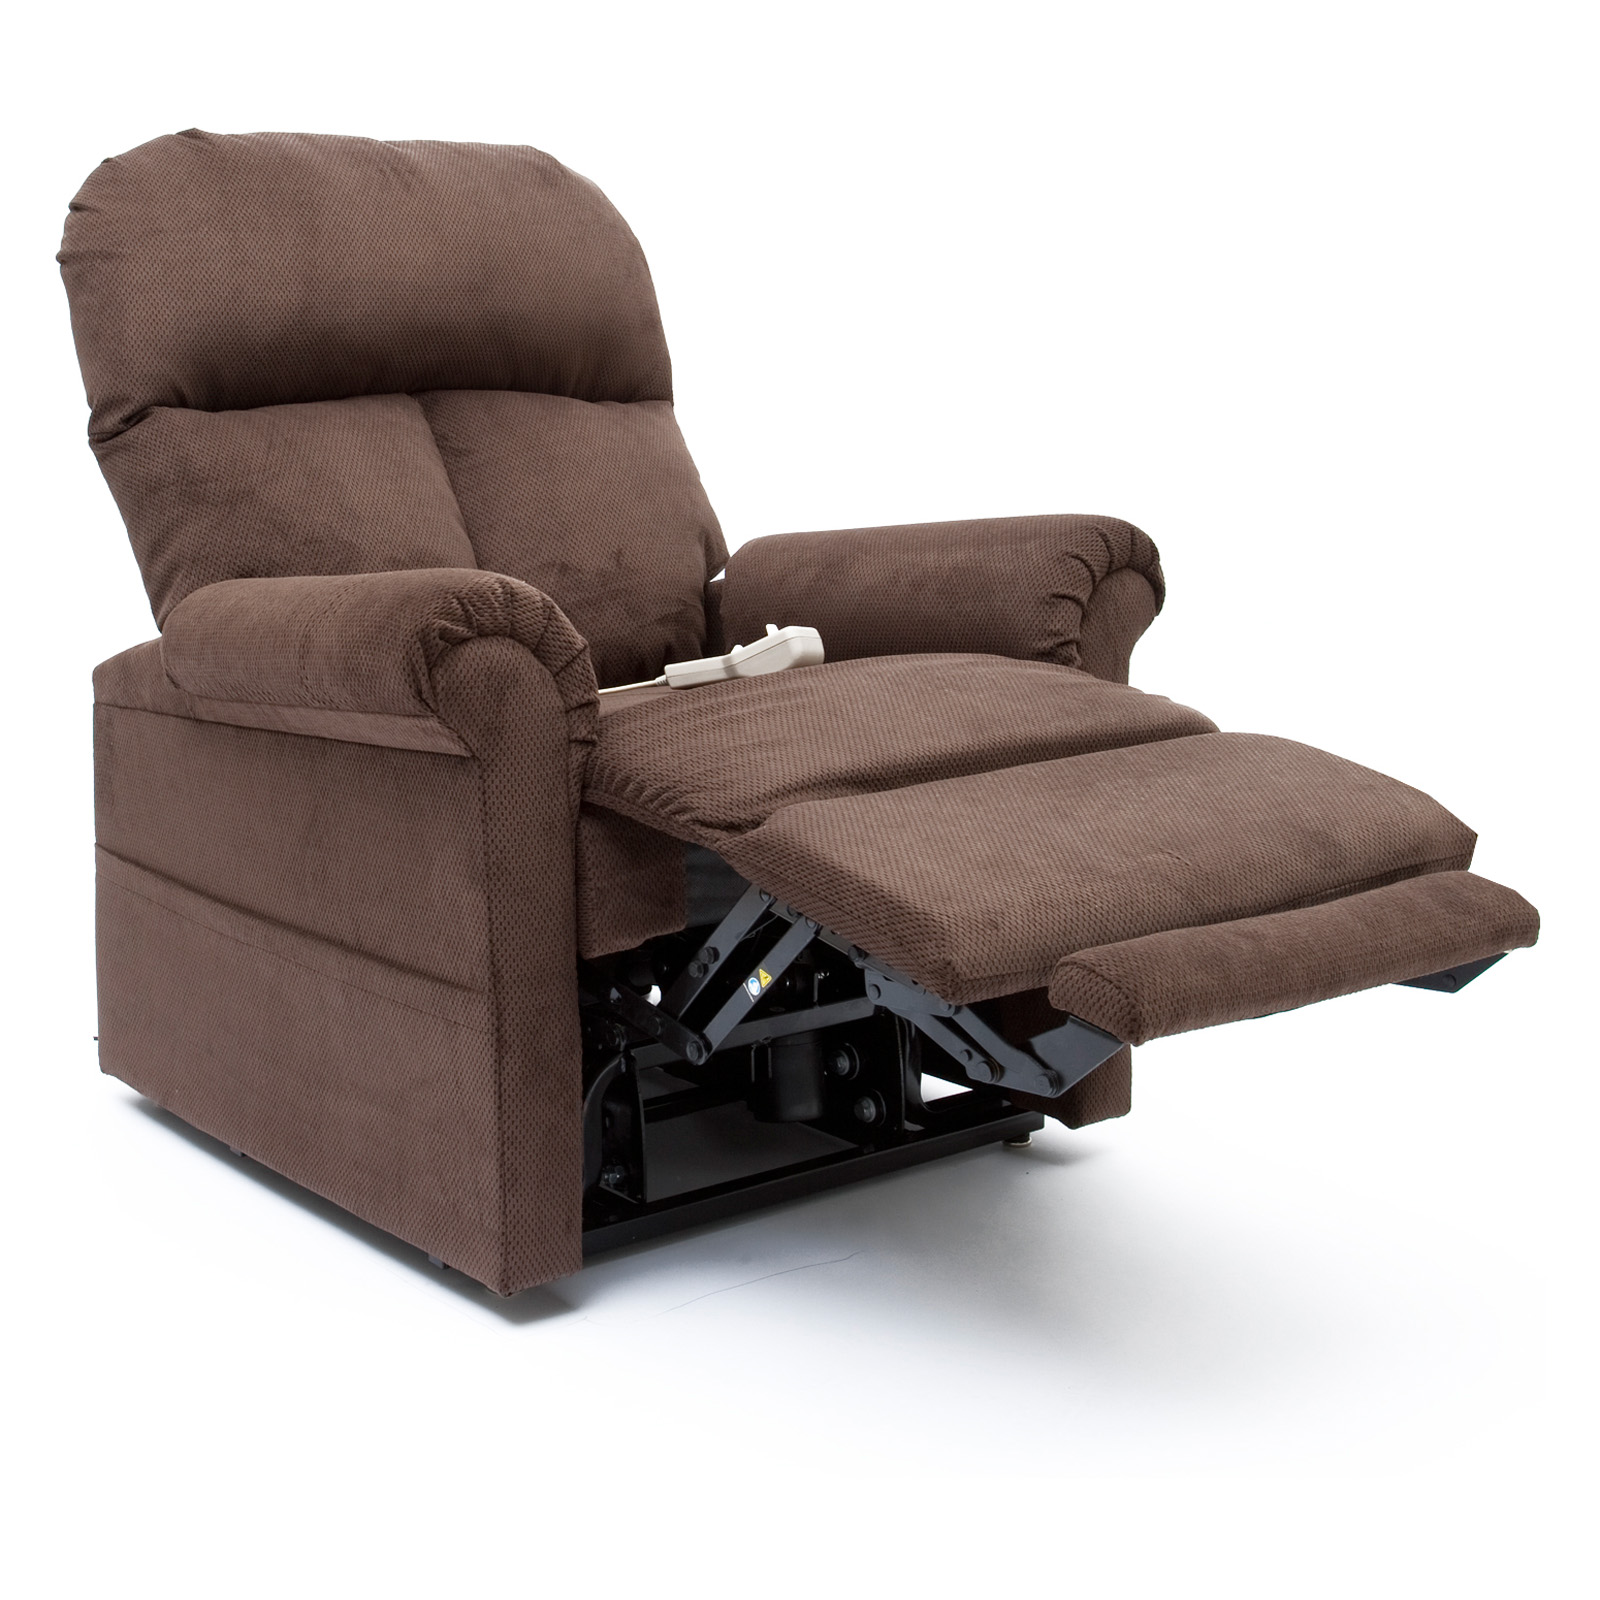 Infinite Position Lift Chair Mega Motion Infinite Position Power Lift Recliner